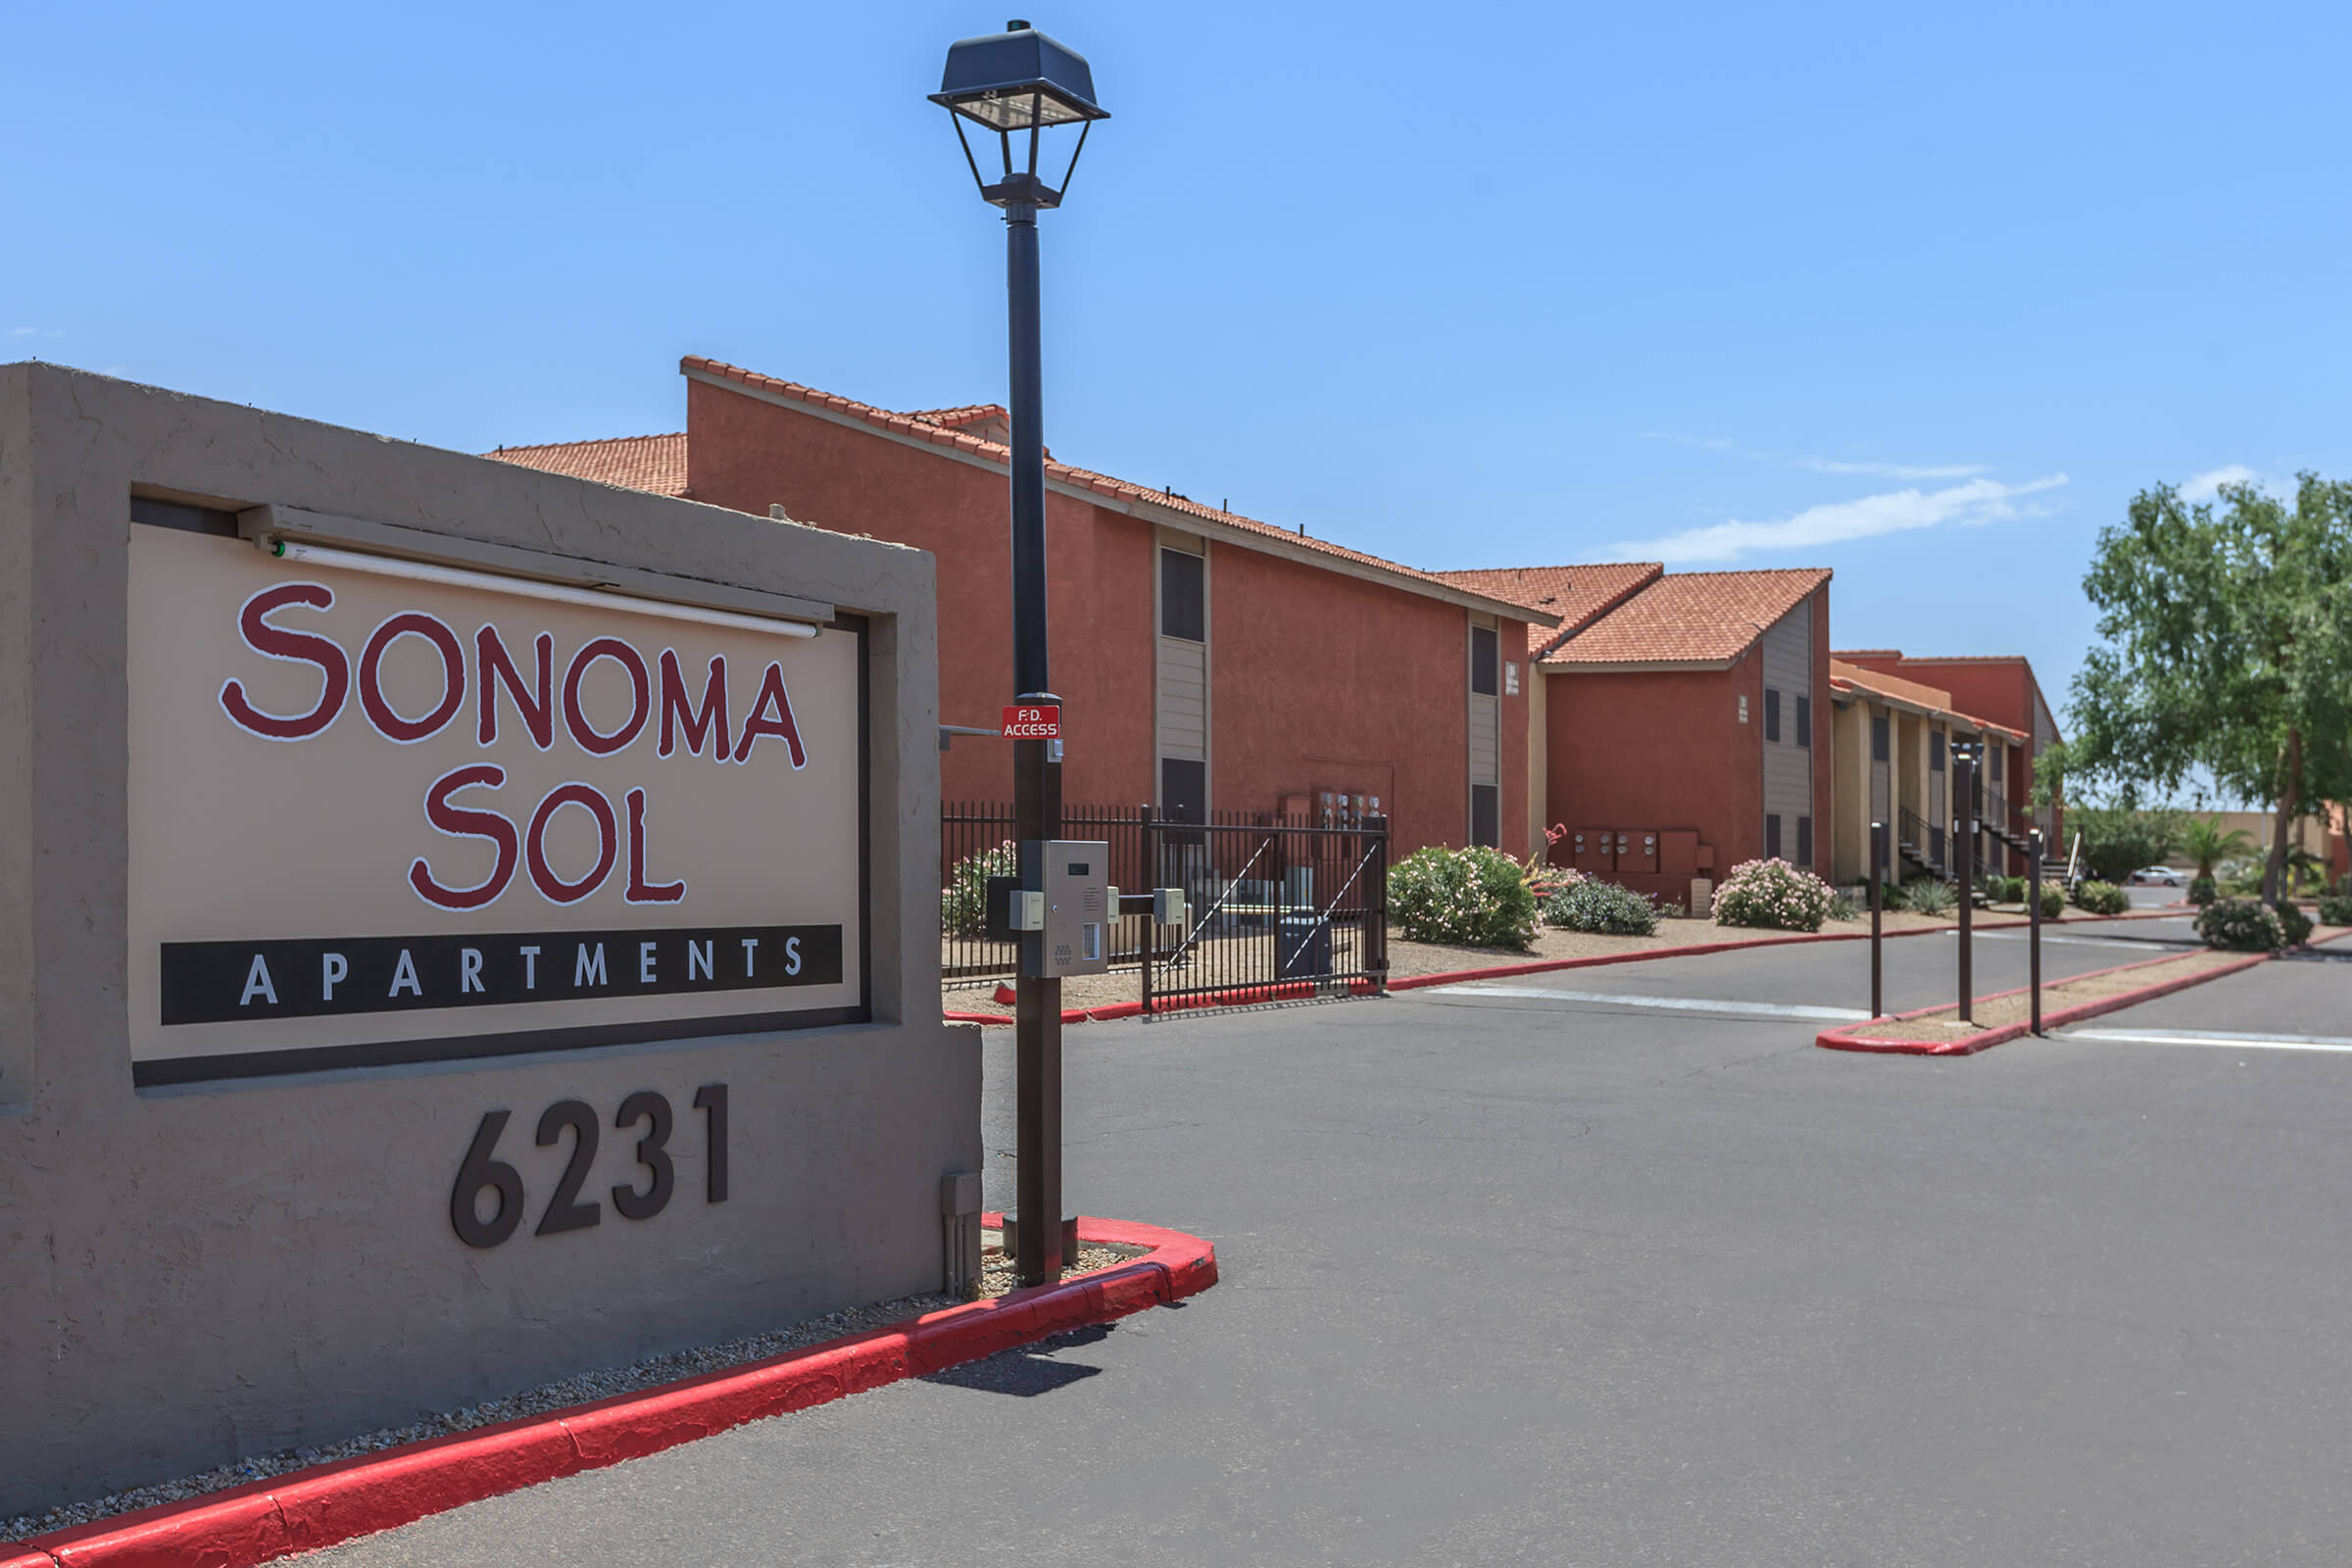 Picture of Sonoma Sol Apartments